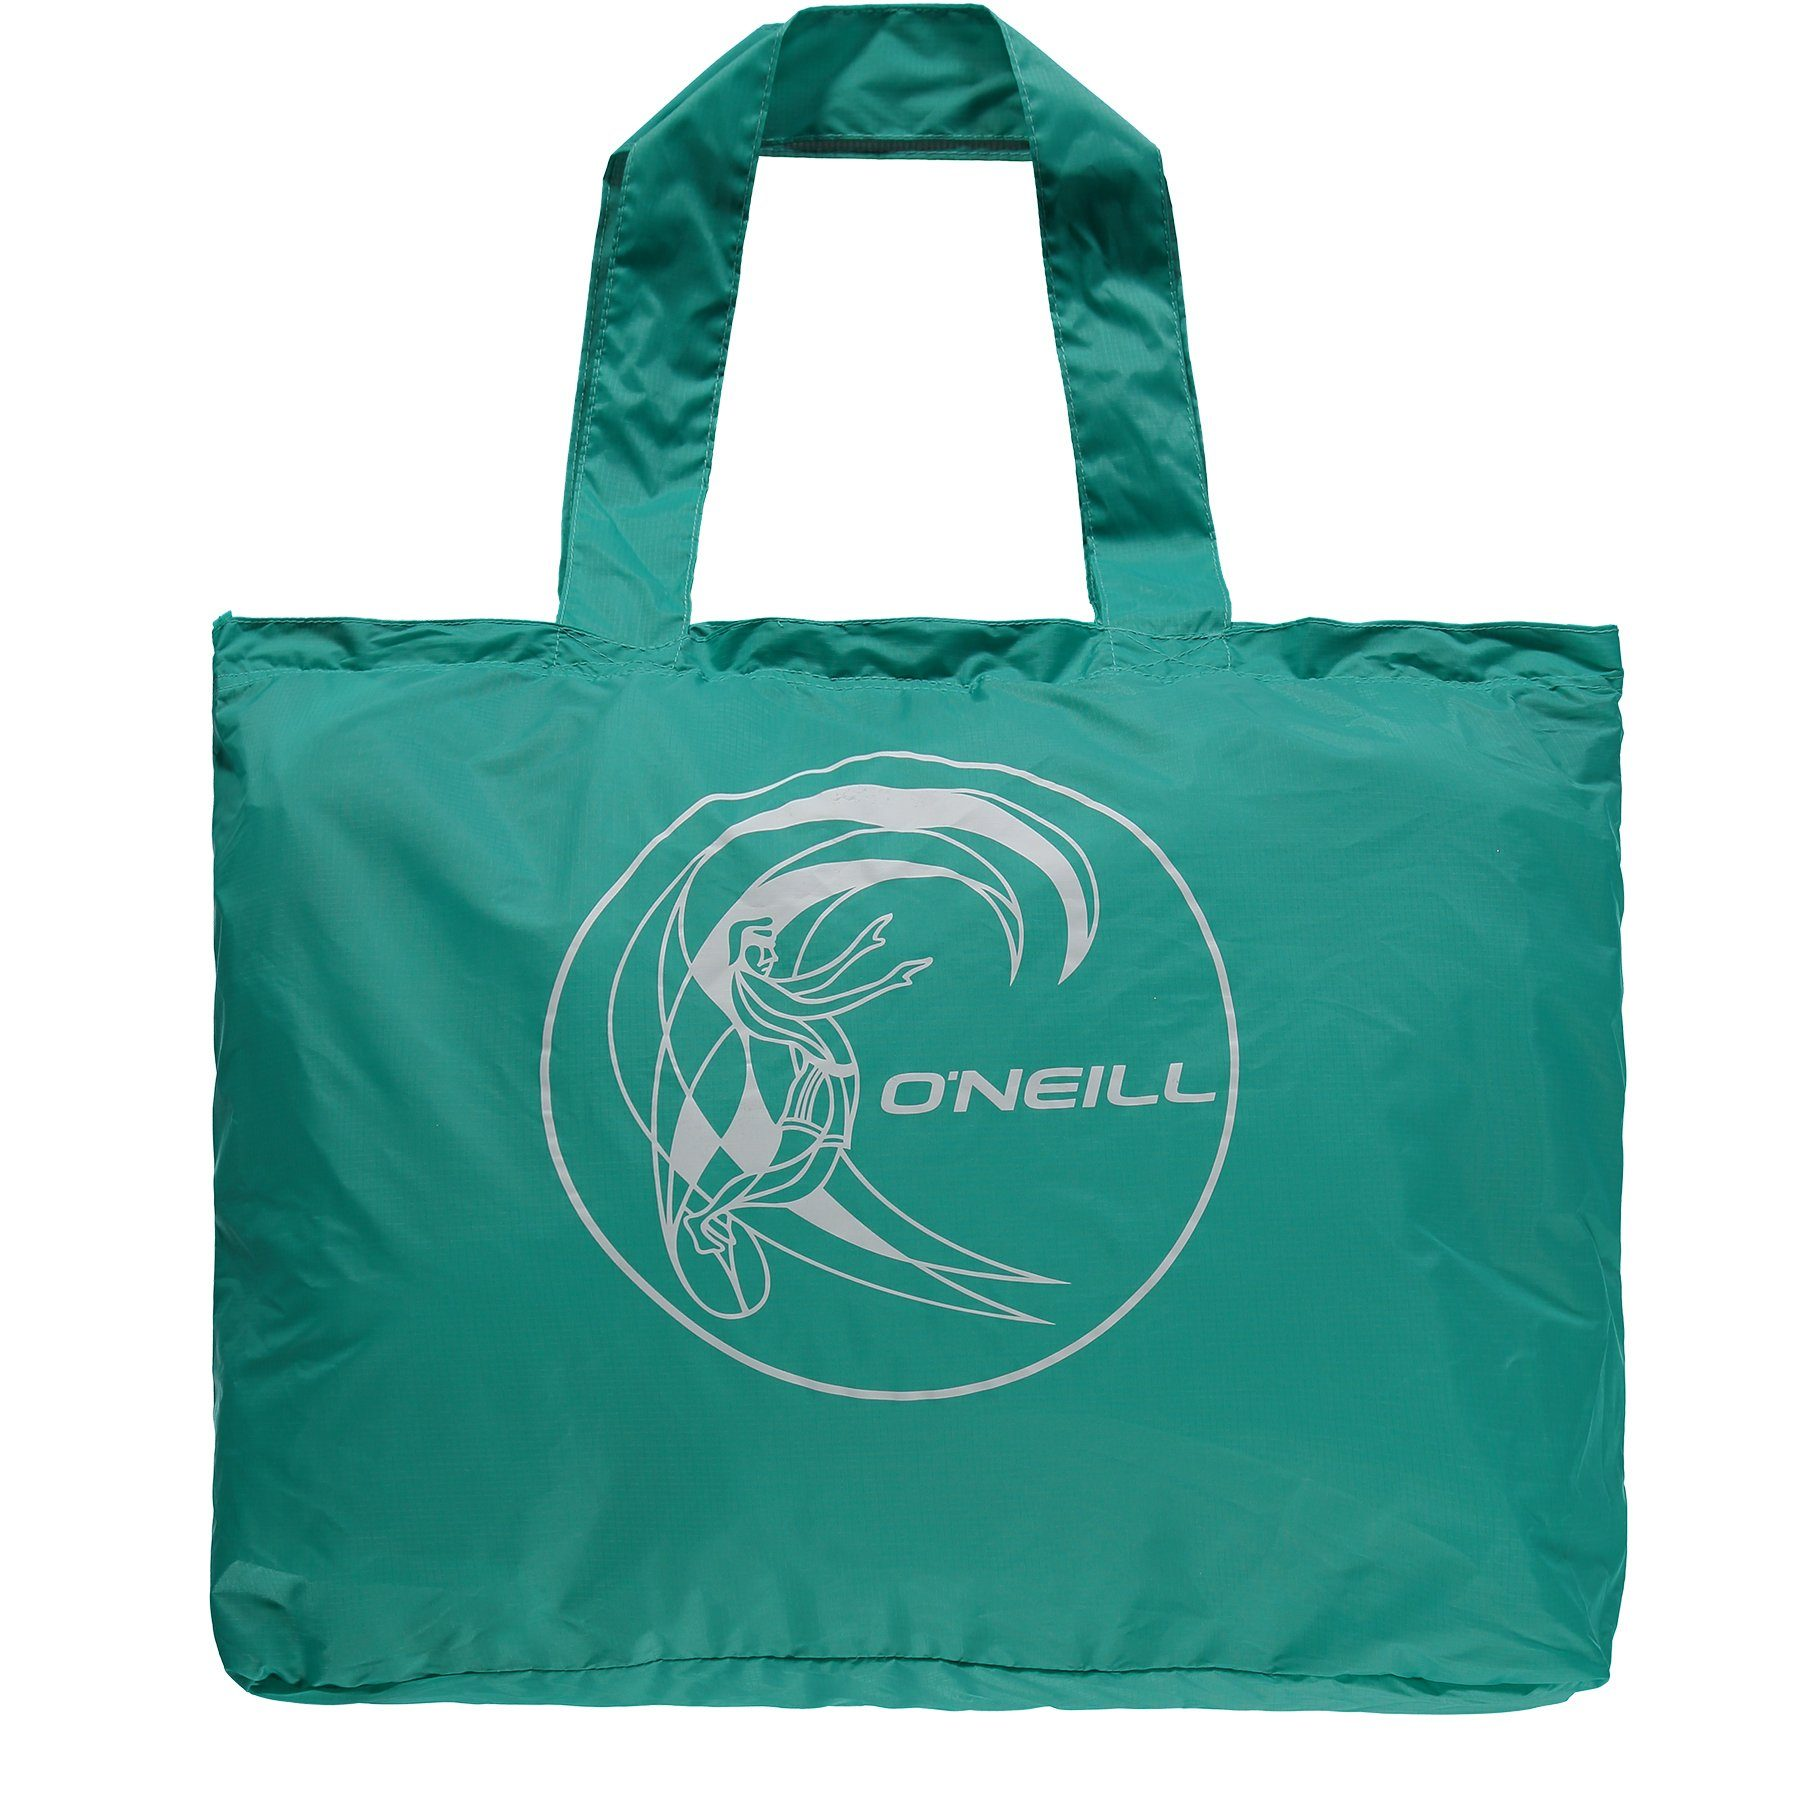 O'Neill Strandtasche »Everyday Shopper«